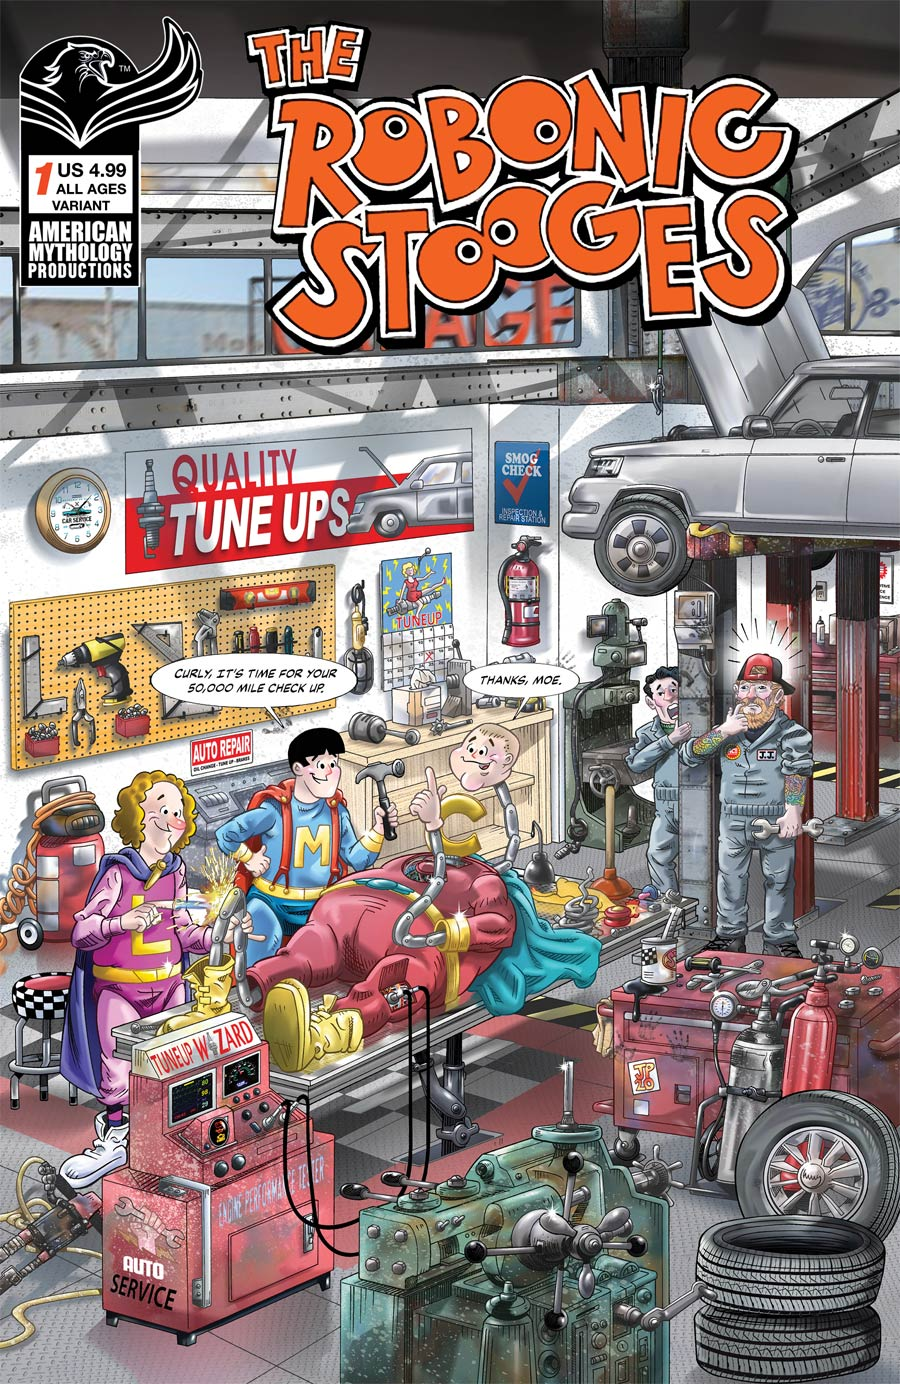 Robonic Stooges #1 Return Cover B Variant Jorge Pacheco Cover